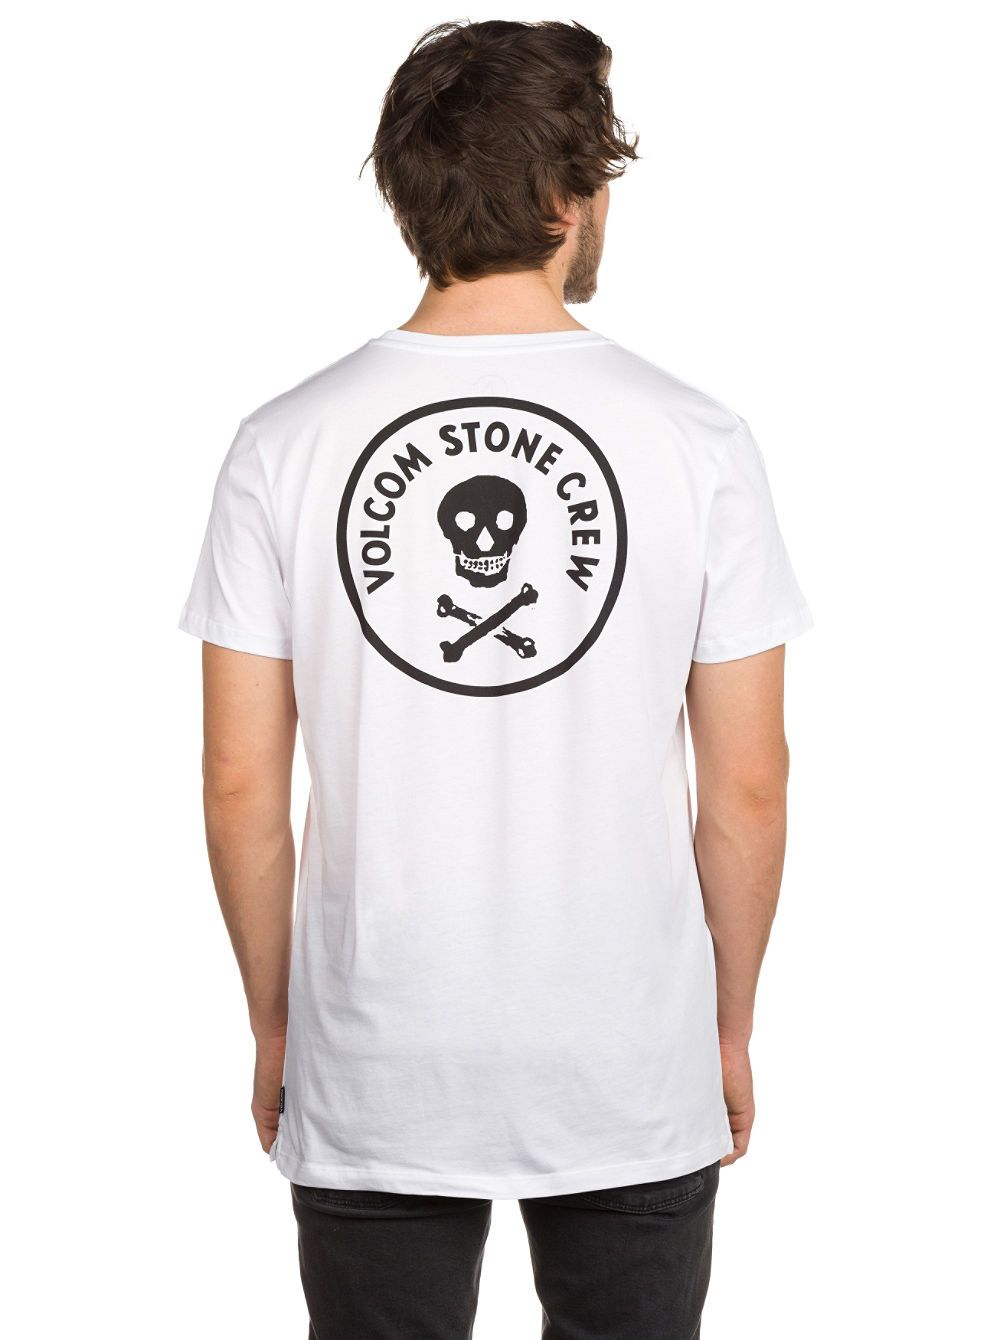 volcom-pirate-stone-tal-t-shirt-ls